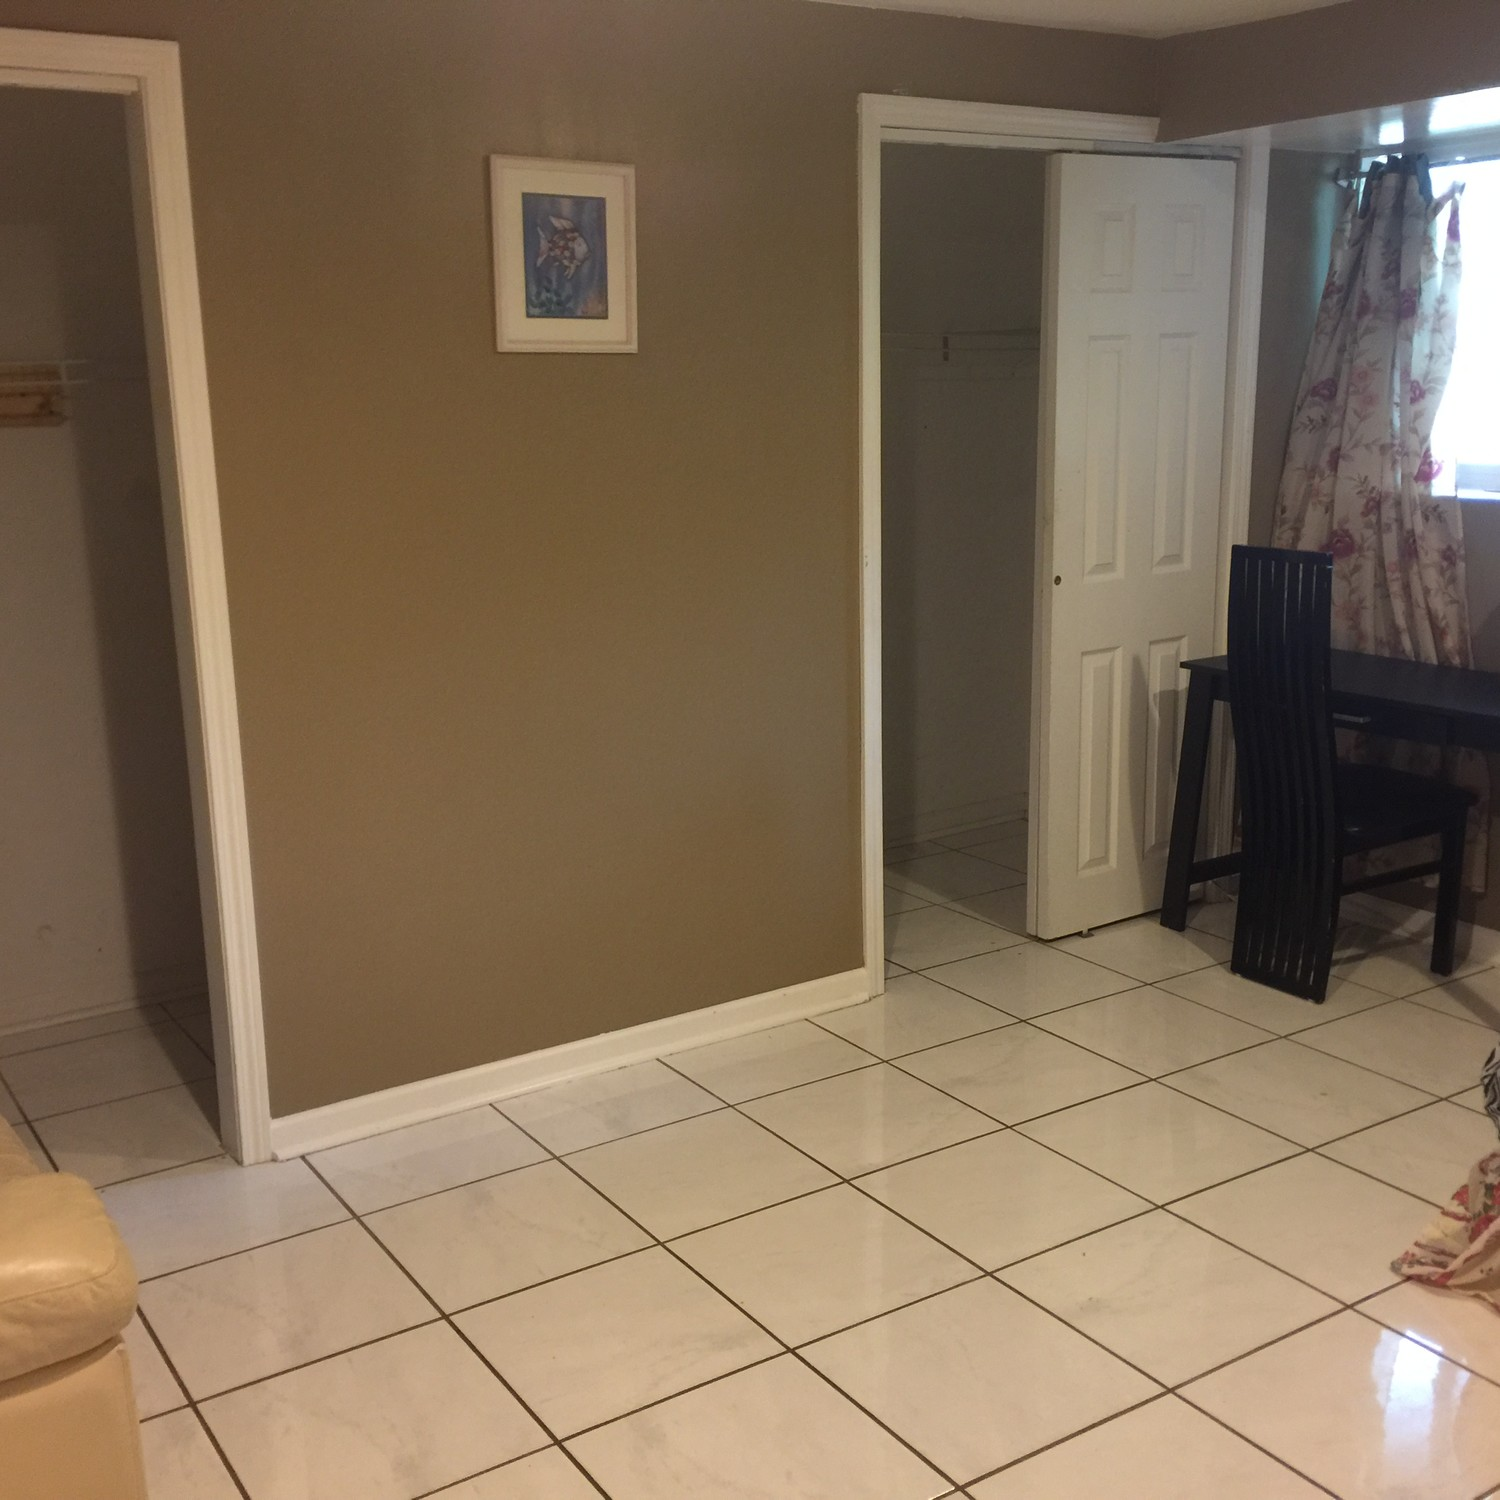 Large bedroom for rent in a single home.